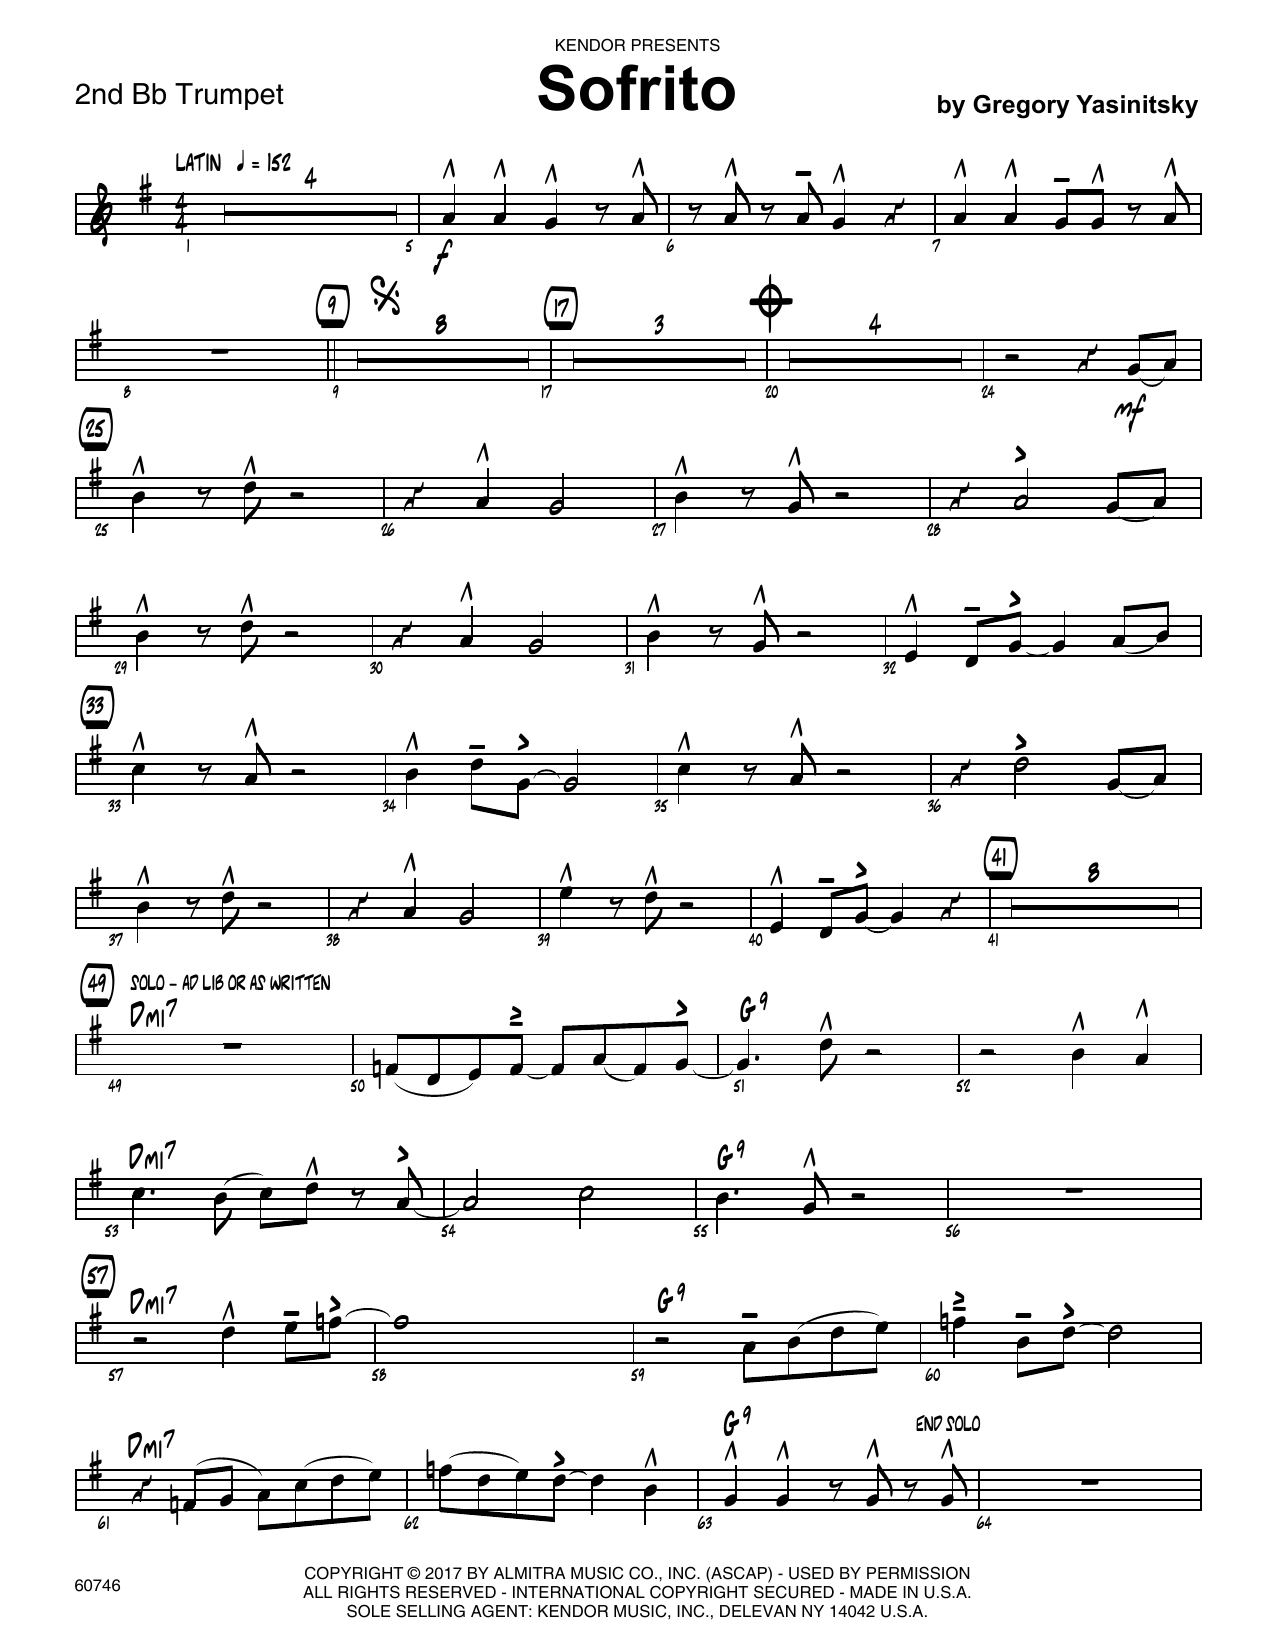 Sofrito - 2nd Bb Trumpet Sheet Music